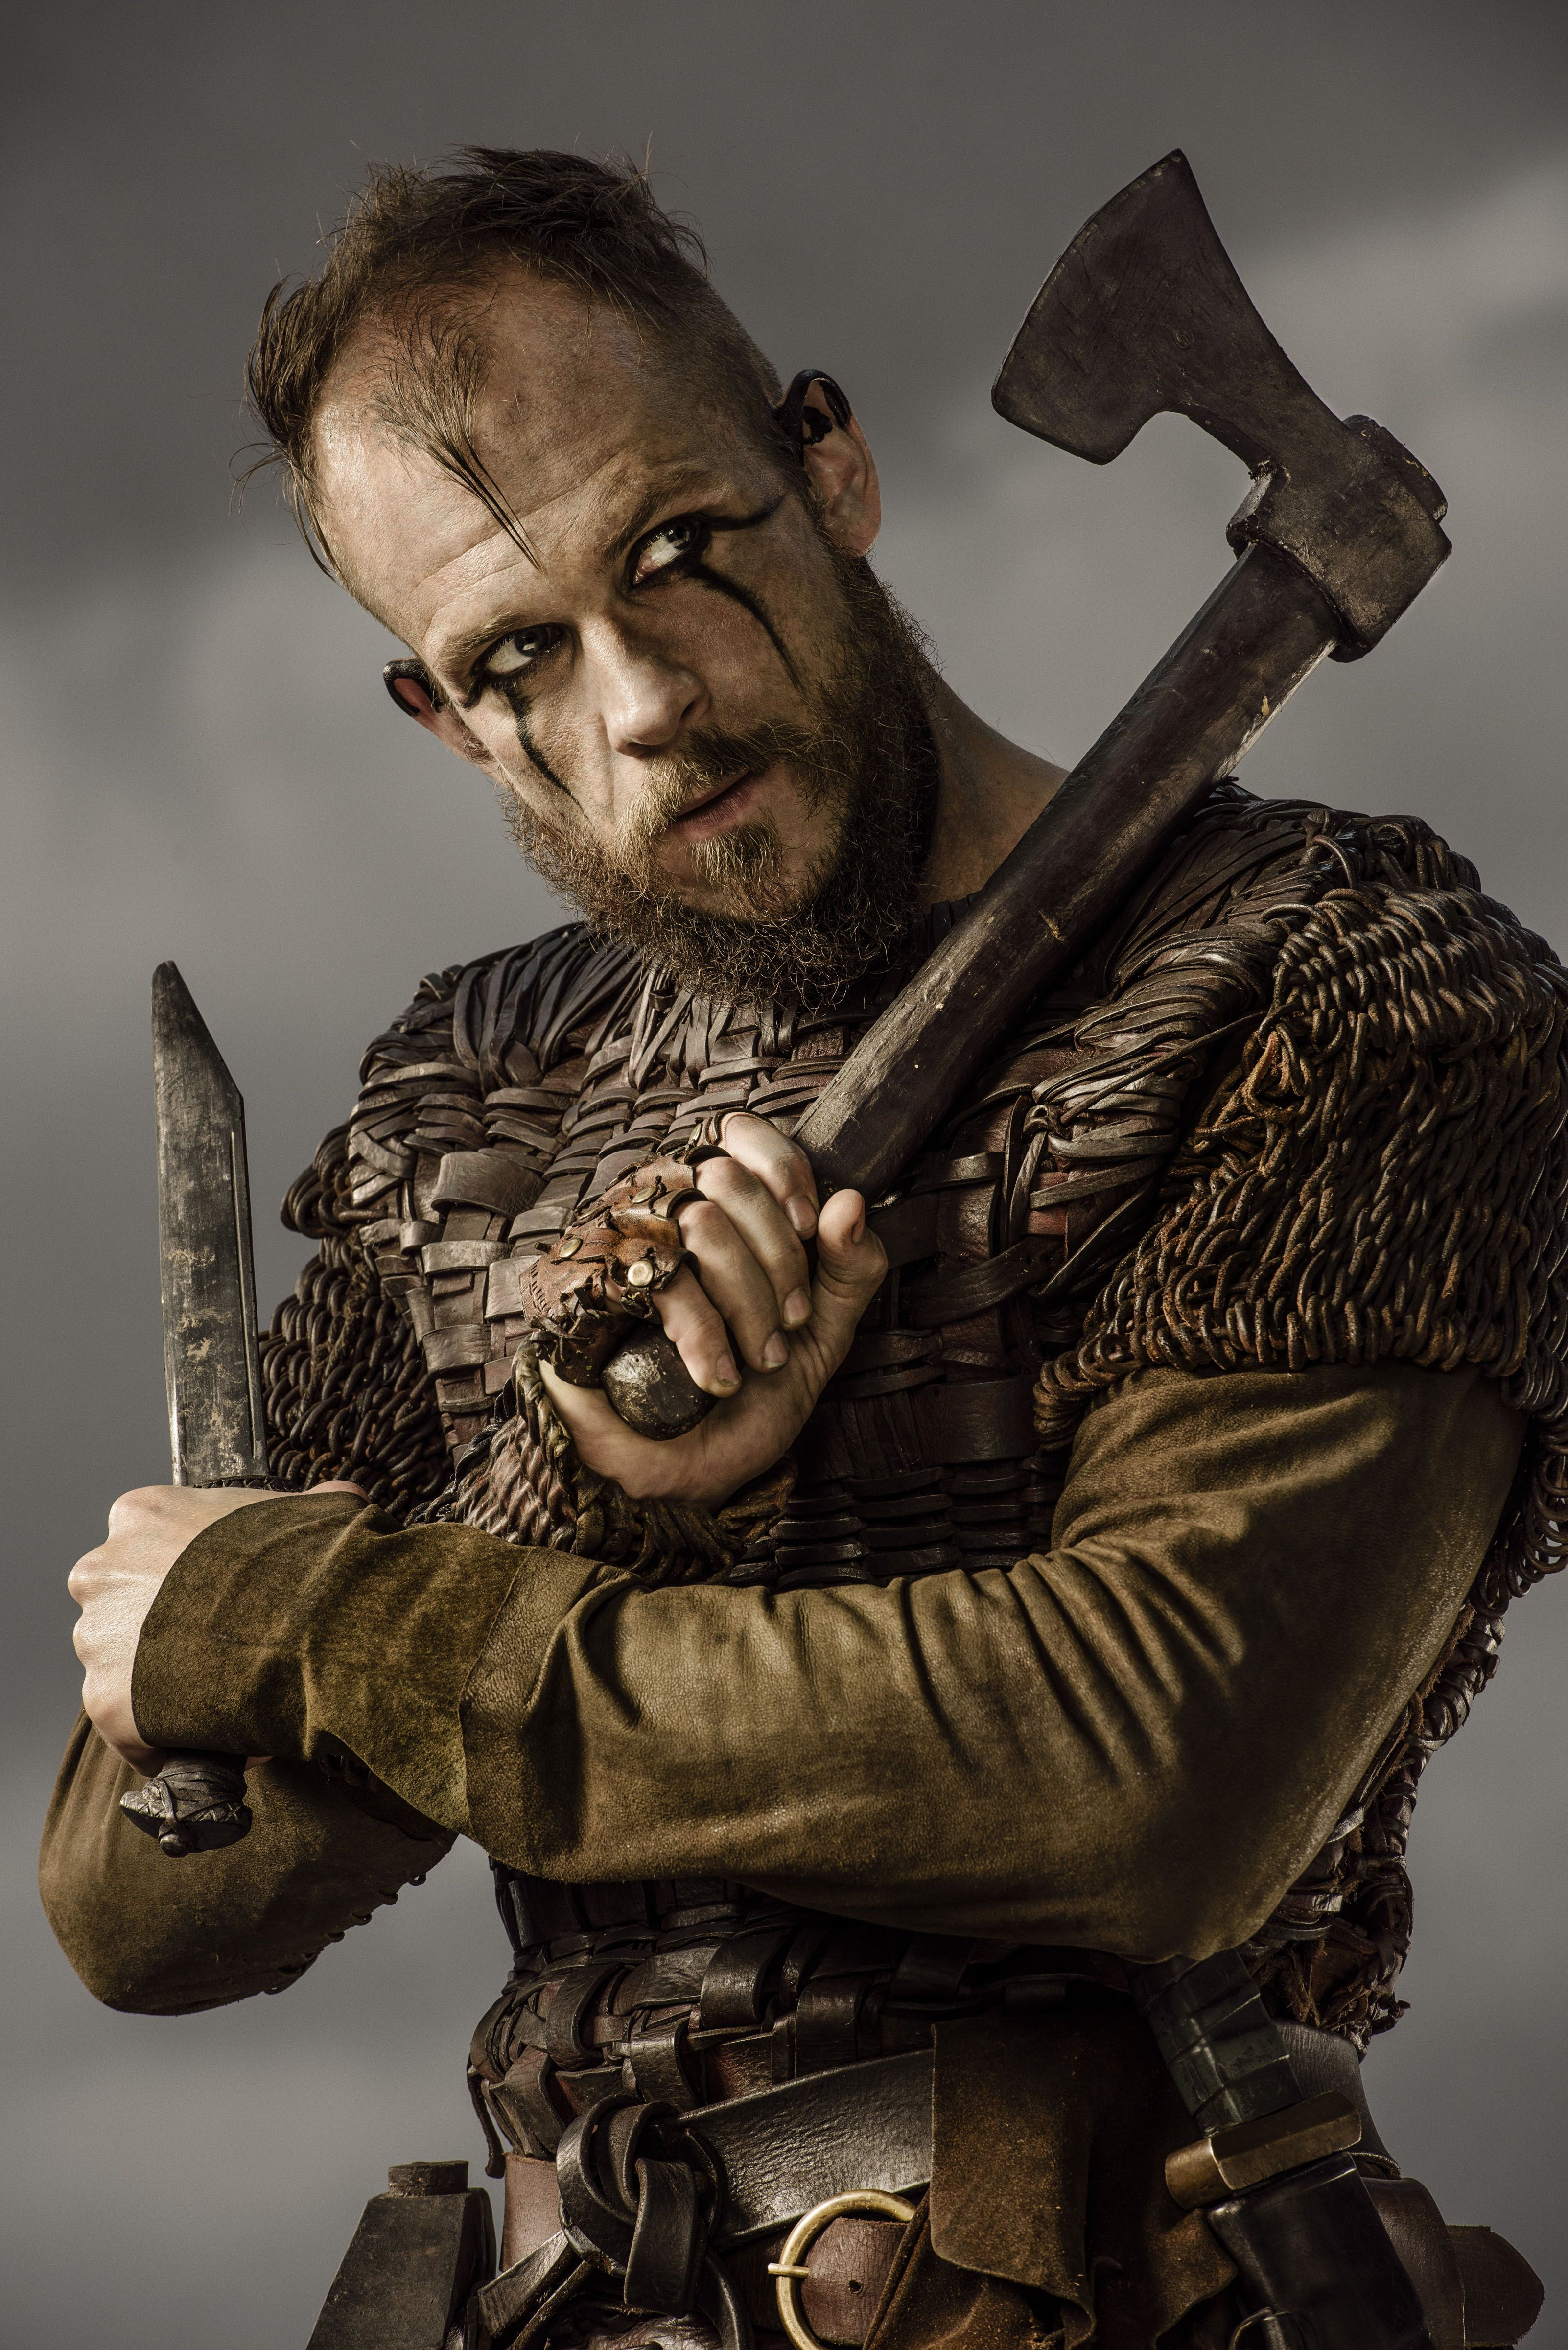 Exceptionnel GustafSkarsgård #Floki #Vikings #HistoryChannel Season Three Promo  CE94